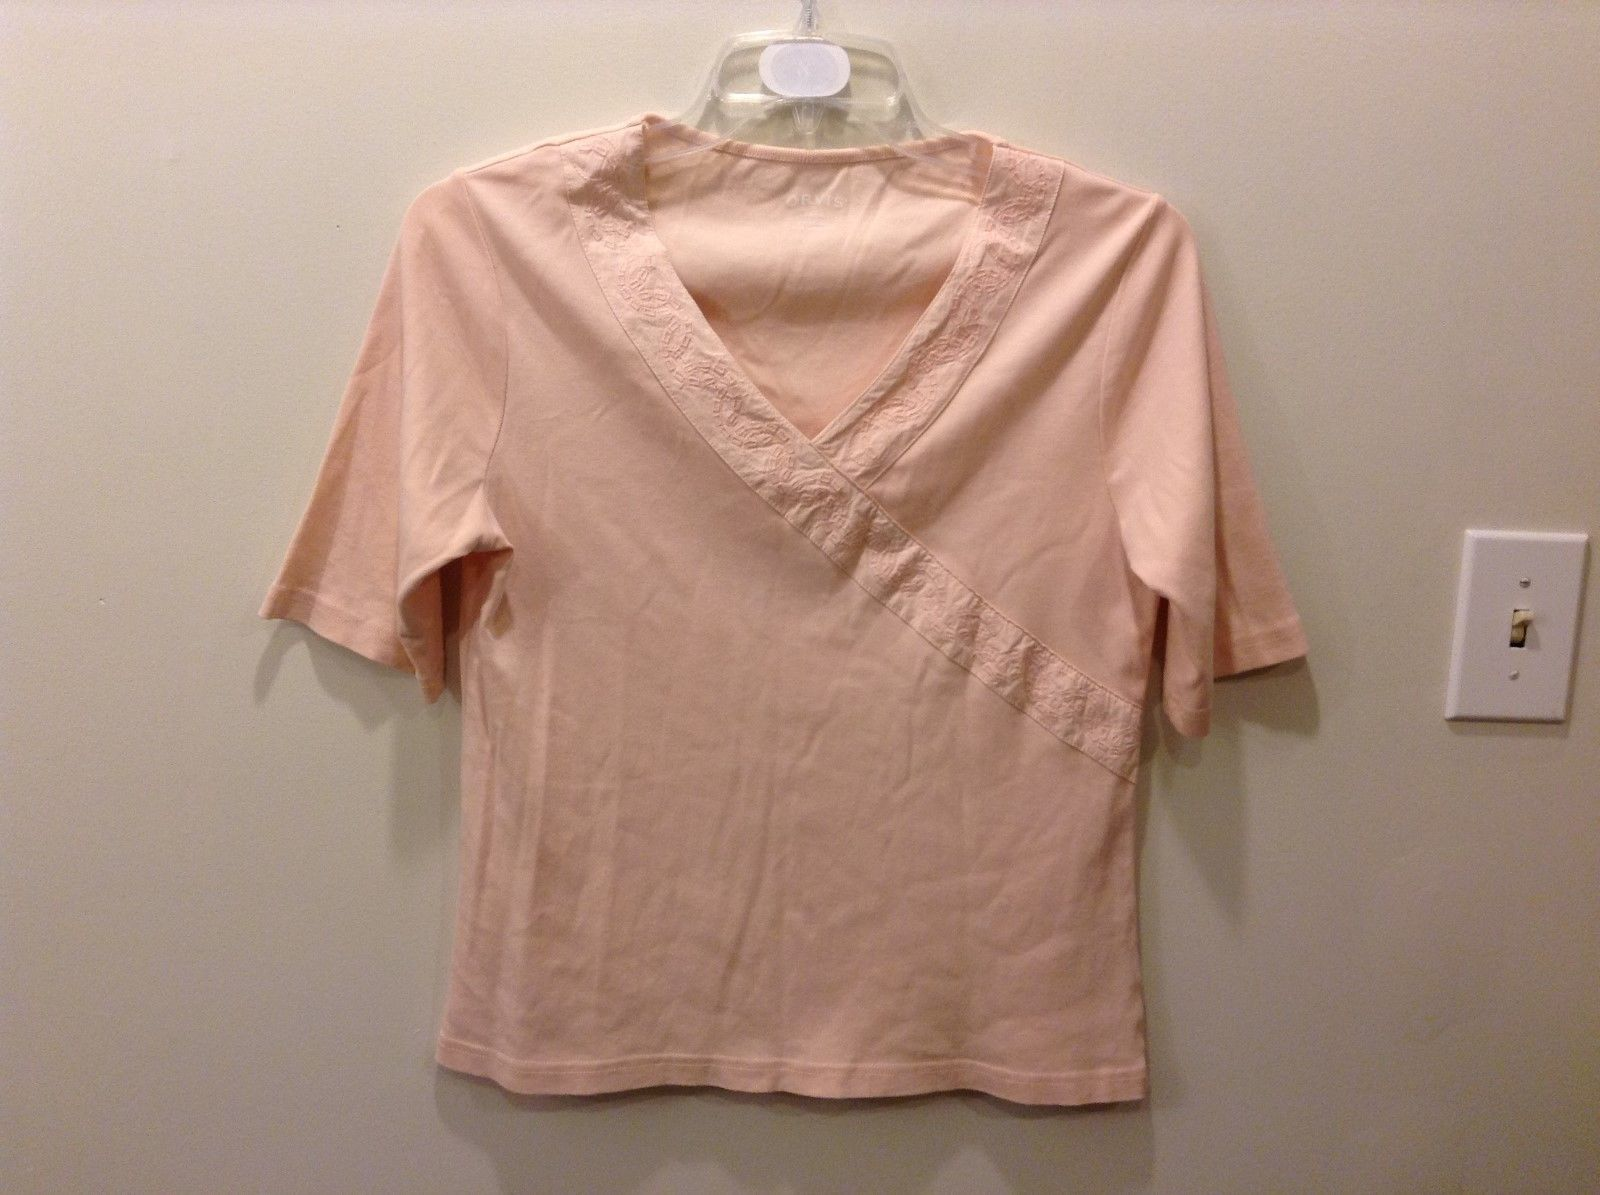 Orvis 100% Cotton Light Pink/Peach Embroidered Short Sleeve Top Size Small